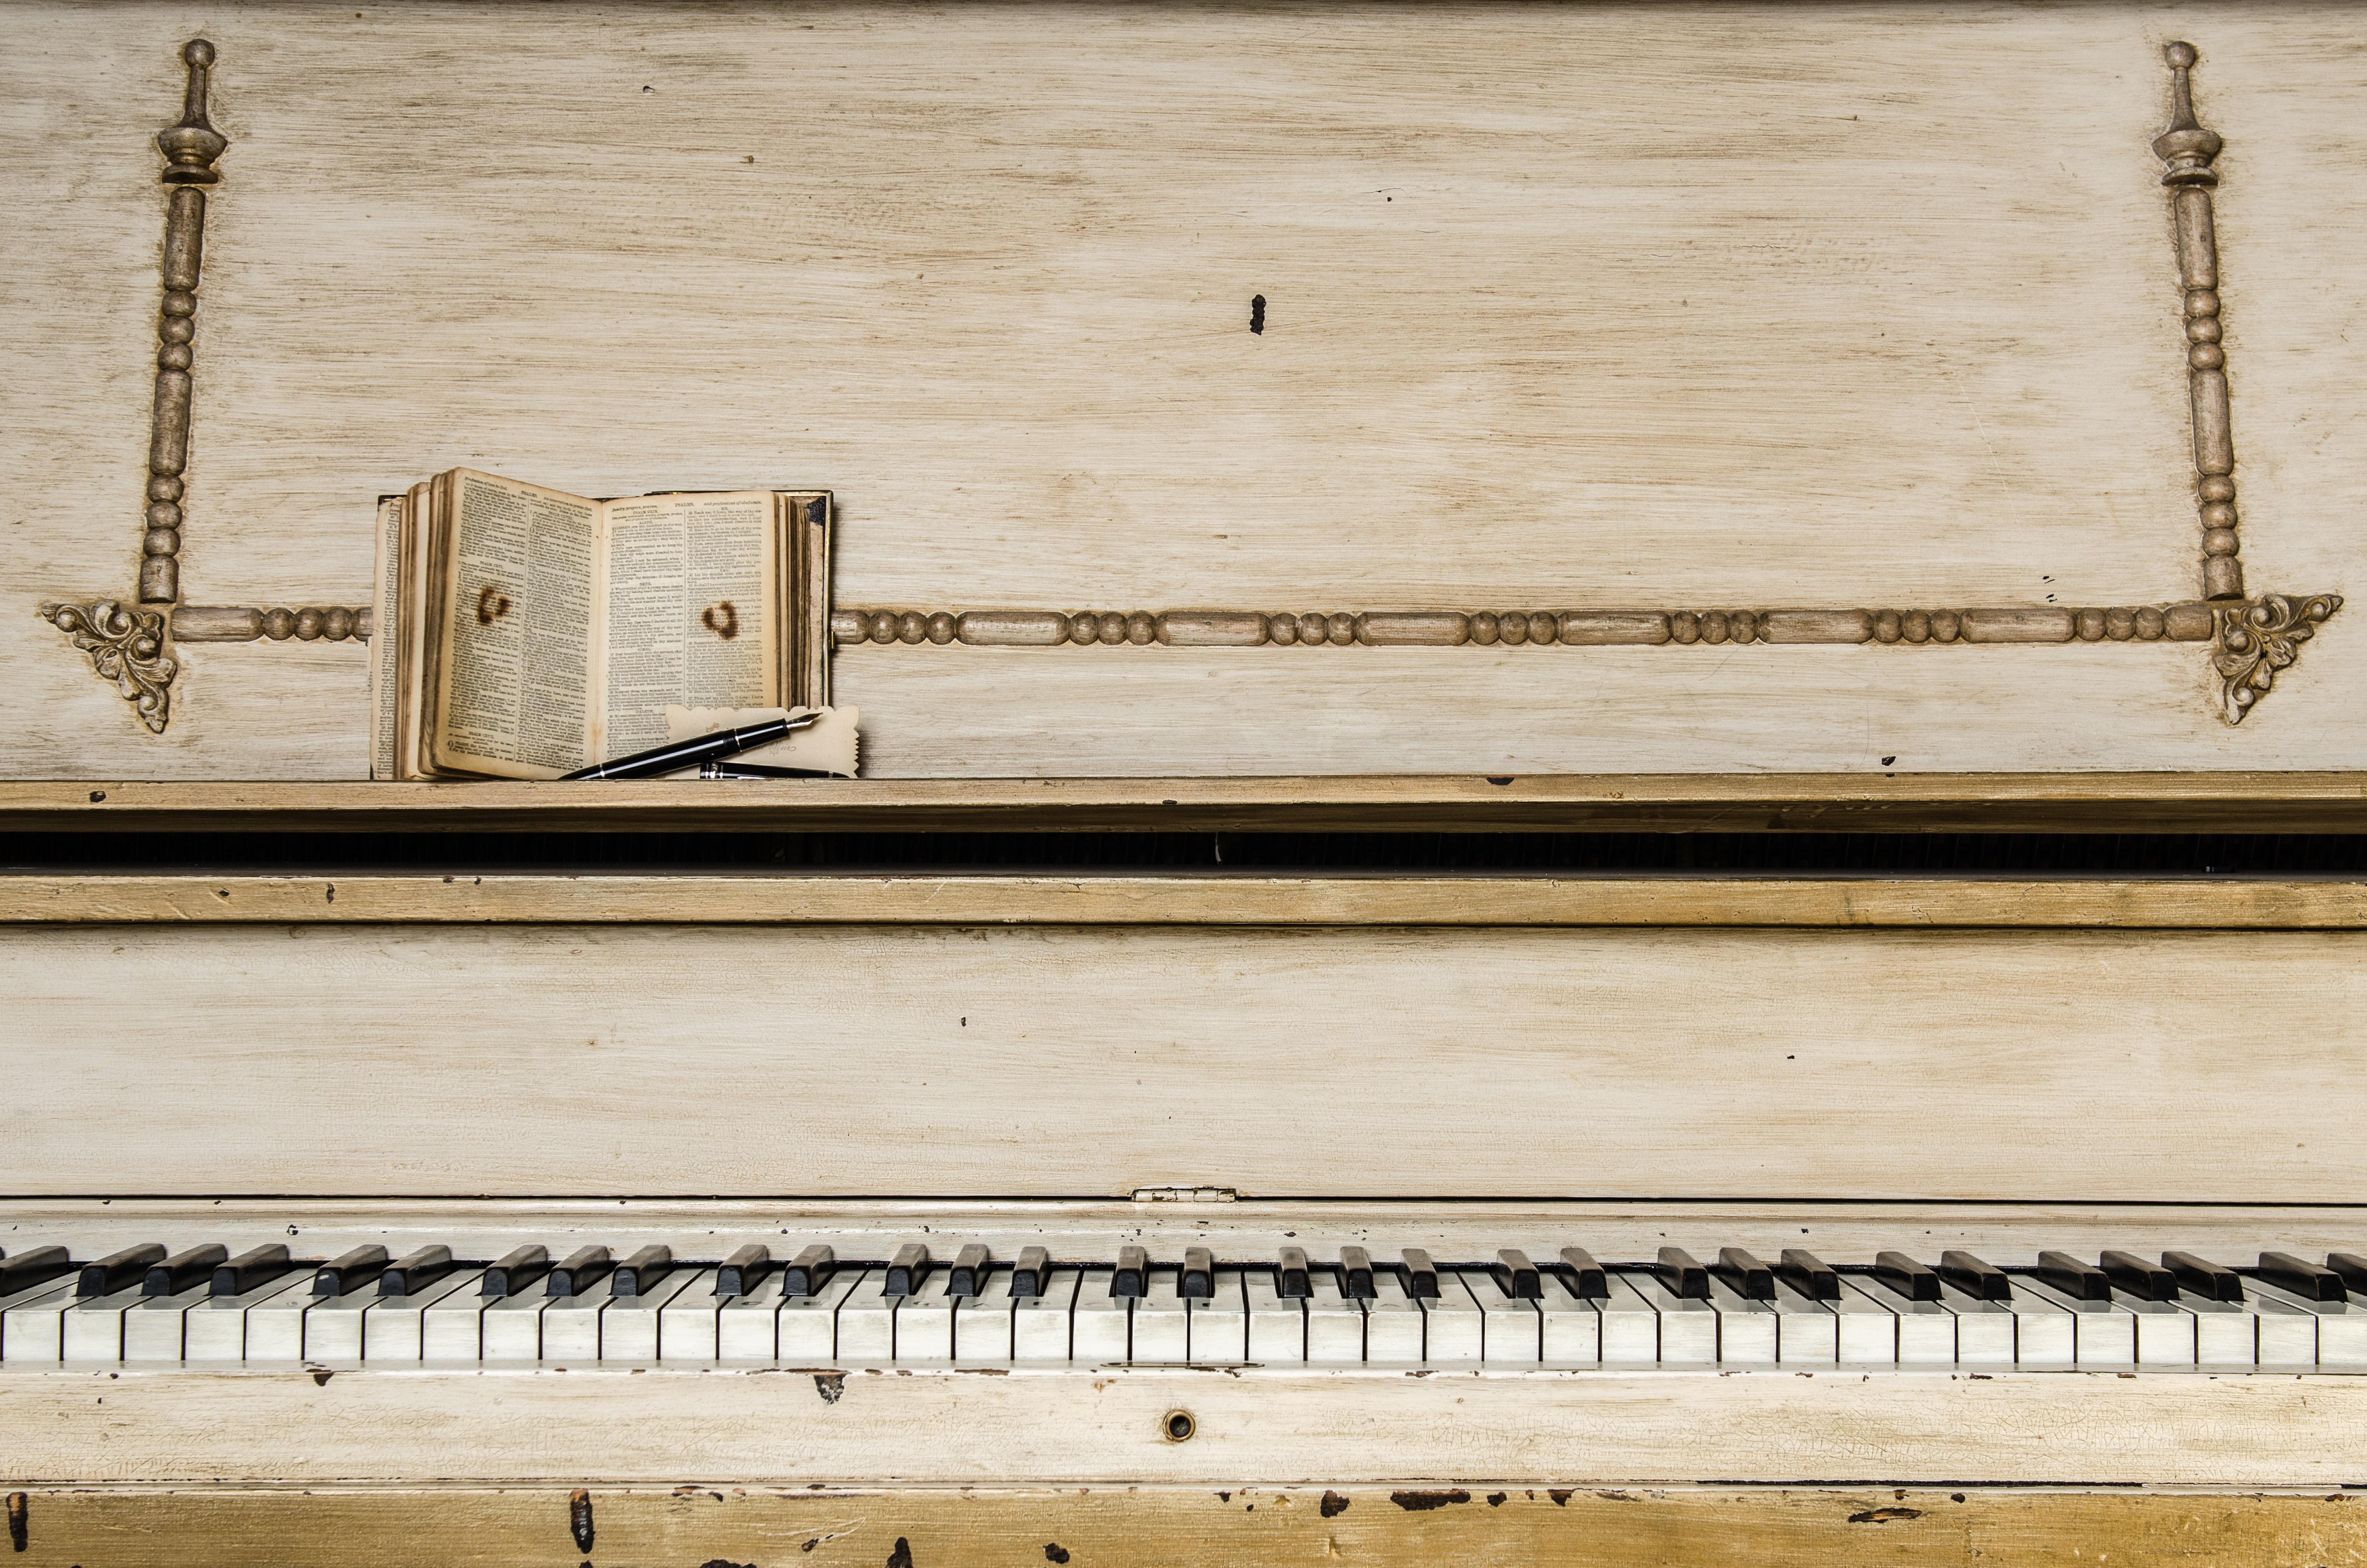 A worn-out beige piano with a little booklet and a pen on it